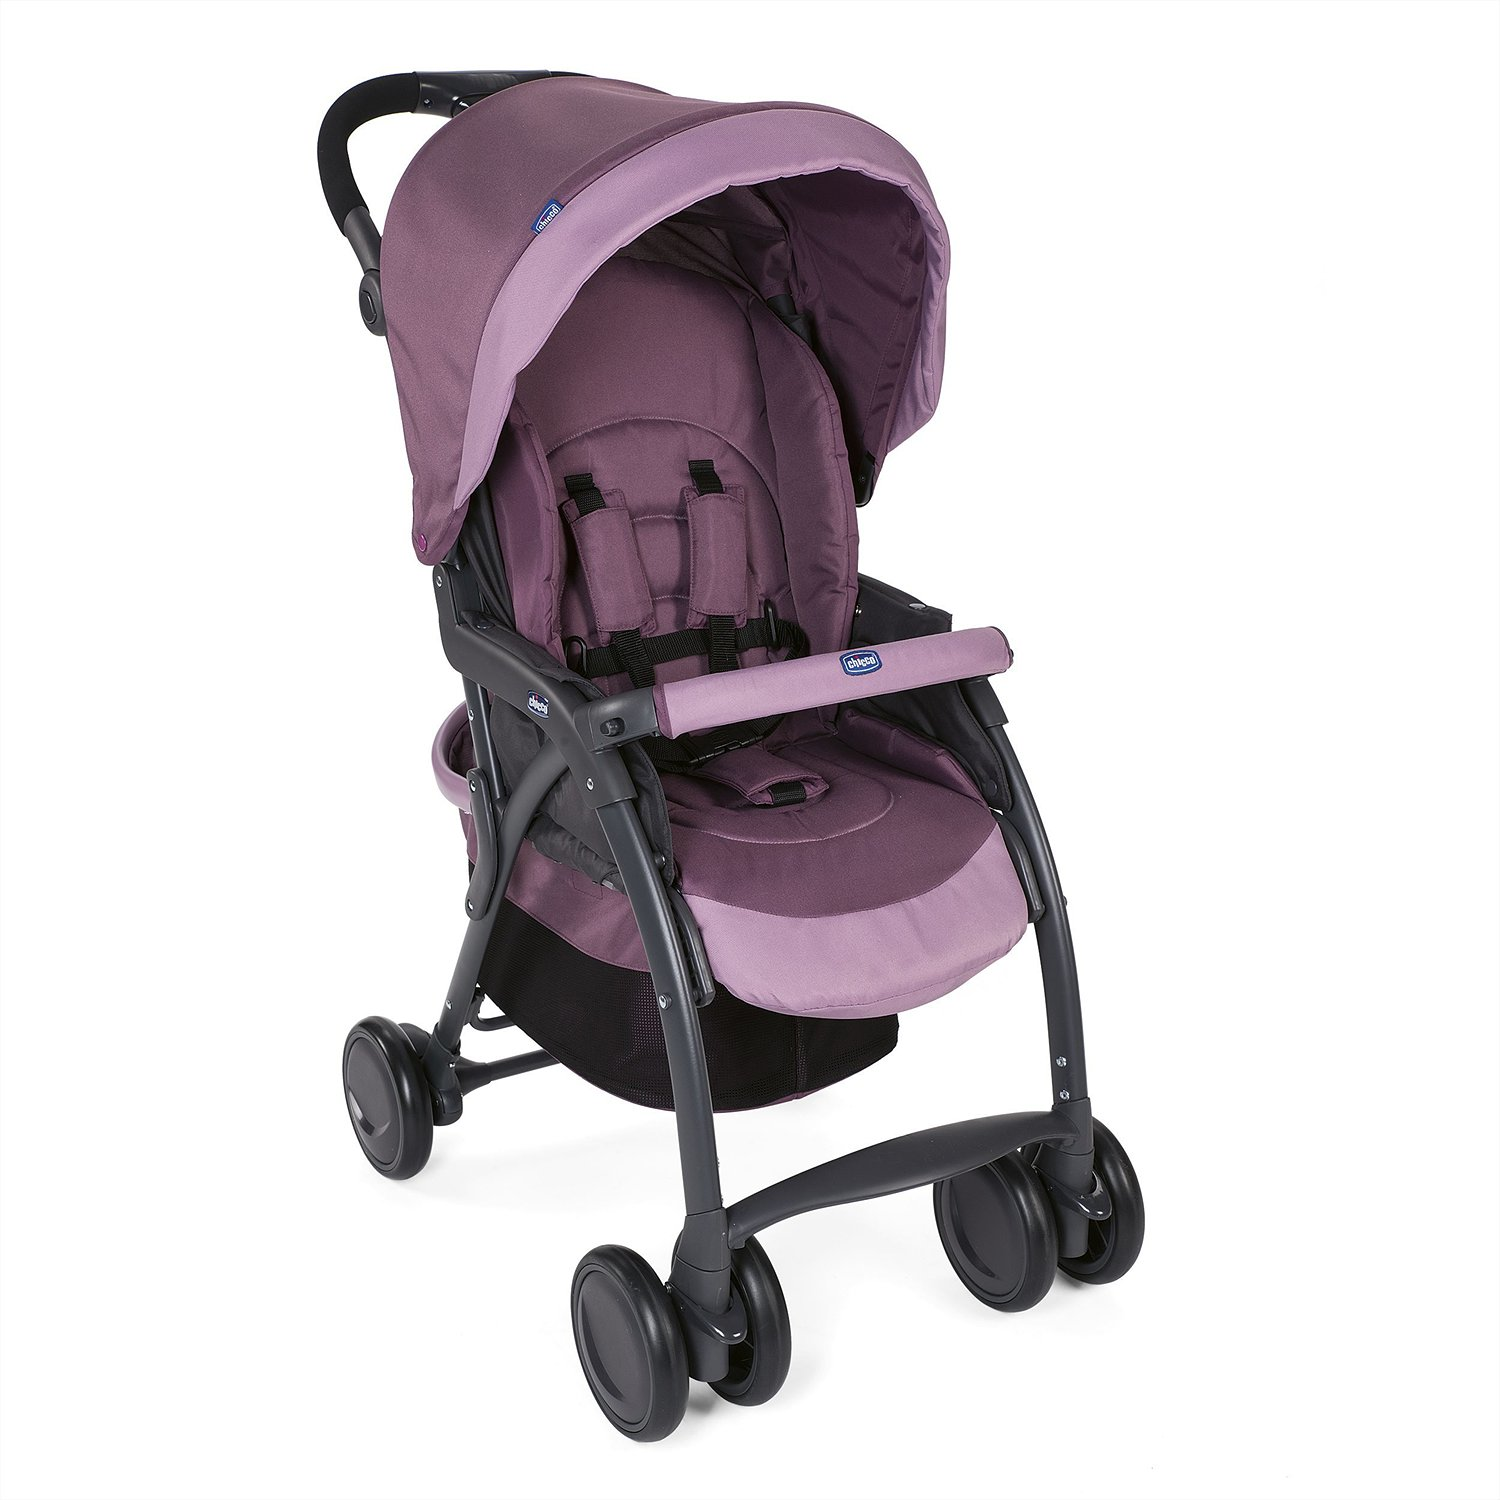 CHICCO SIMPLICITY PLUS TOP LILAC 95503